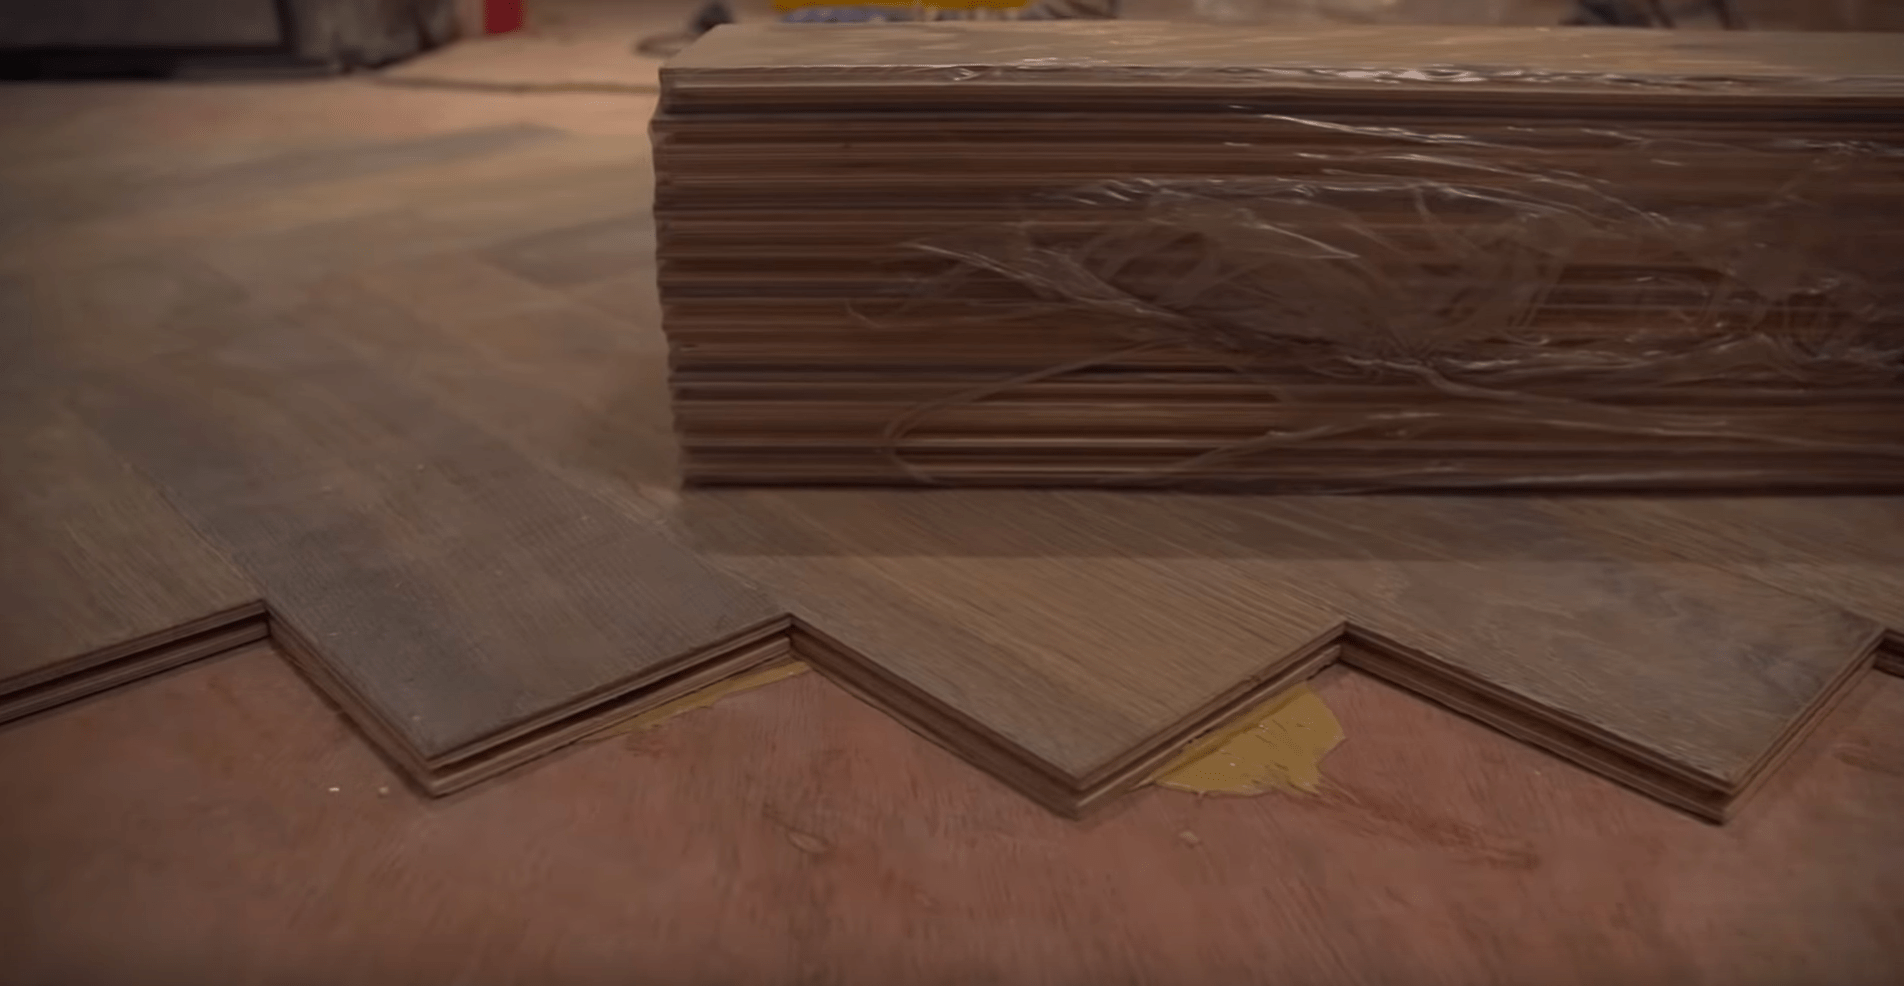 laying solid wood flooring onto